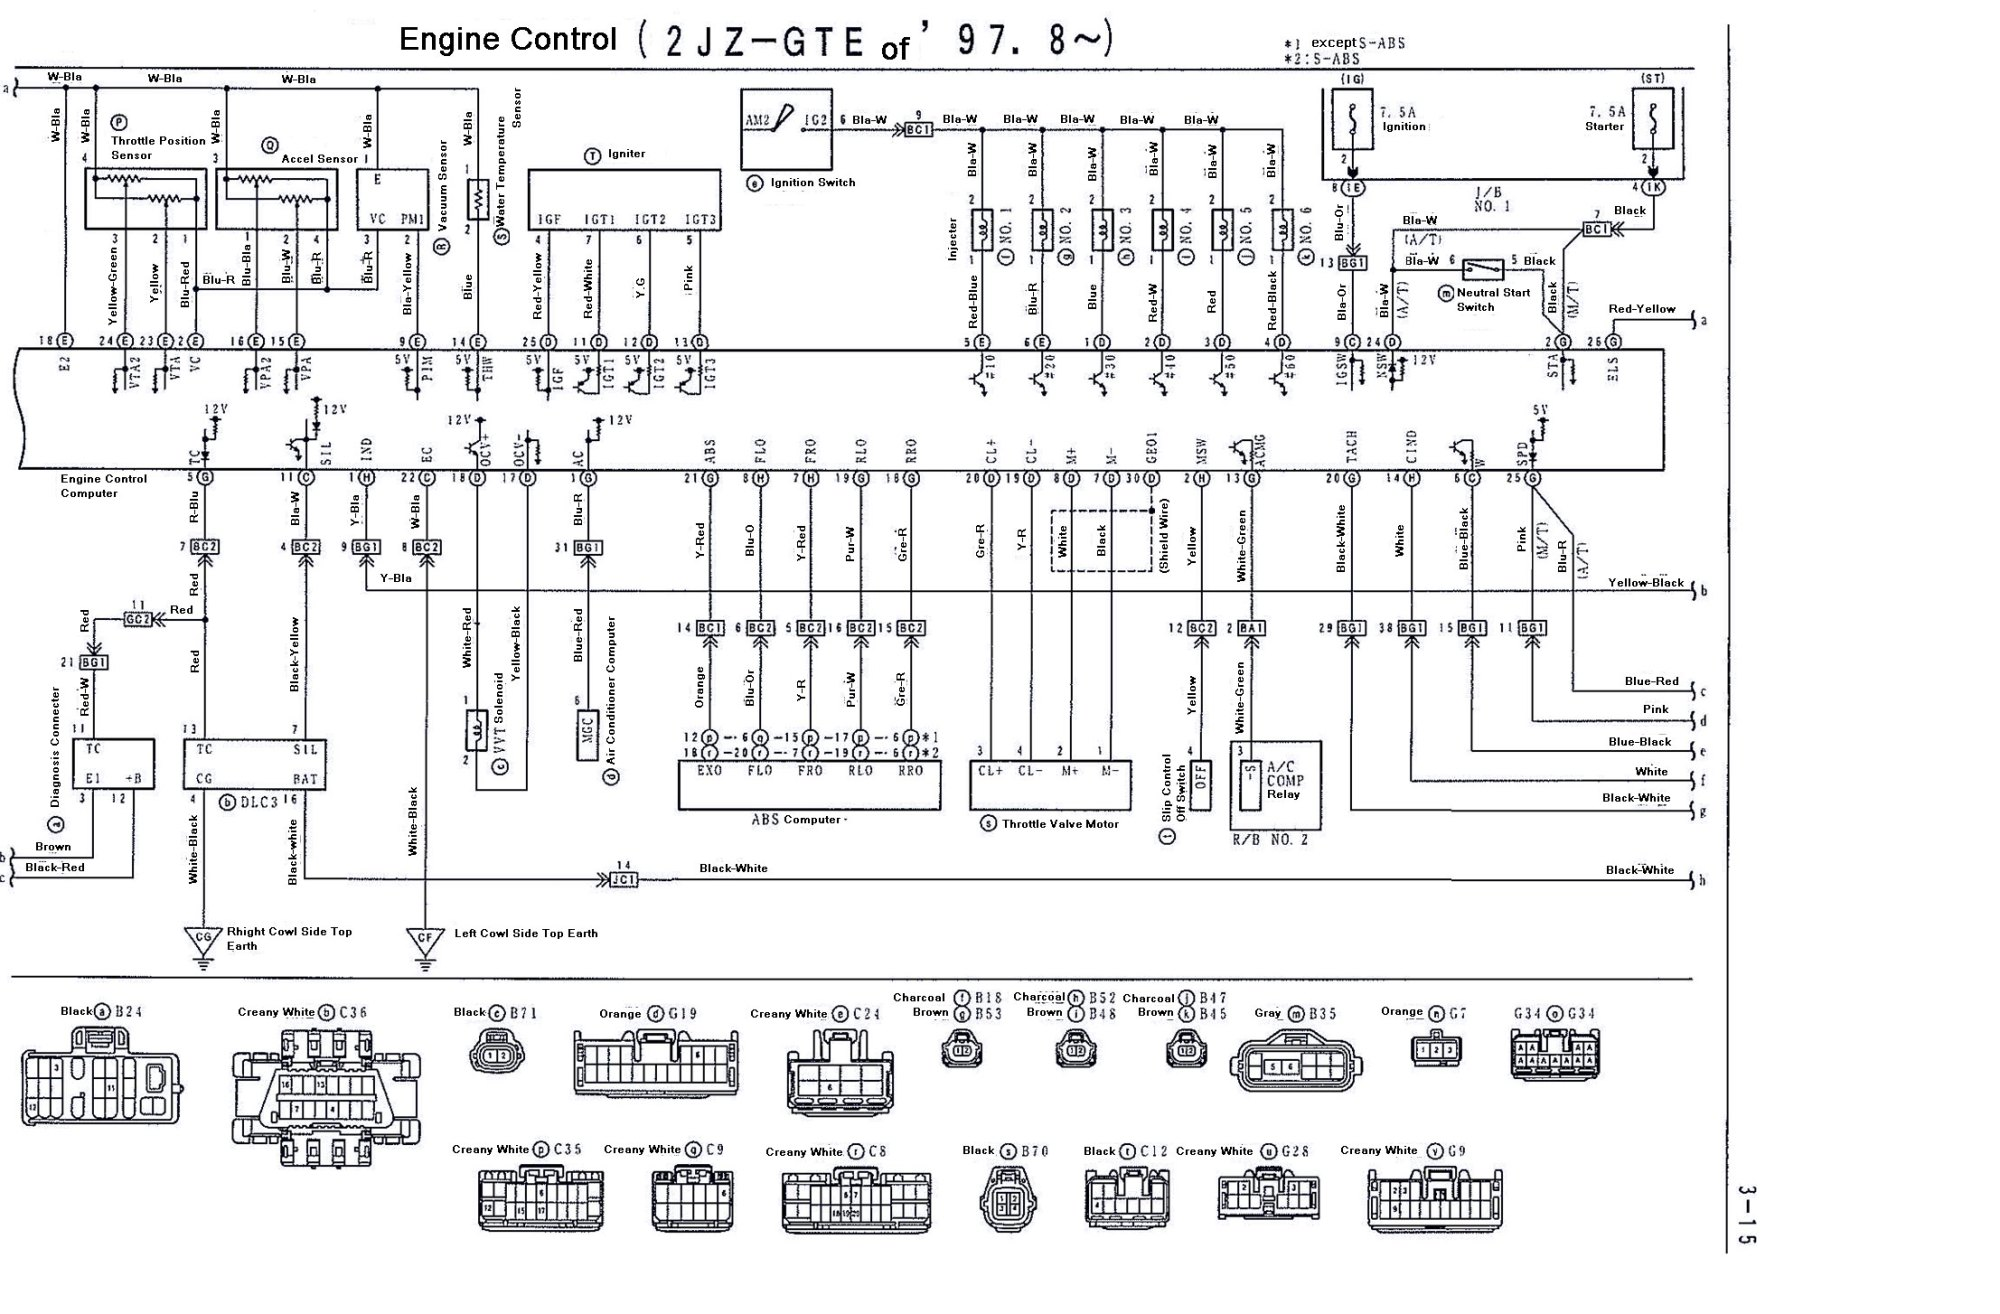 hight resolution of 94 lexus es300 fuse diagram wiring library rh 7 codingcommunity de 2002 lexus is300 fuse box